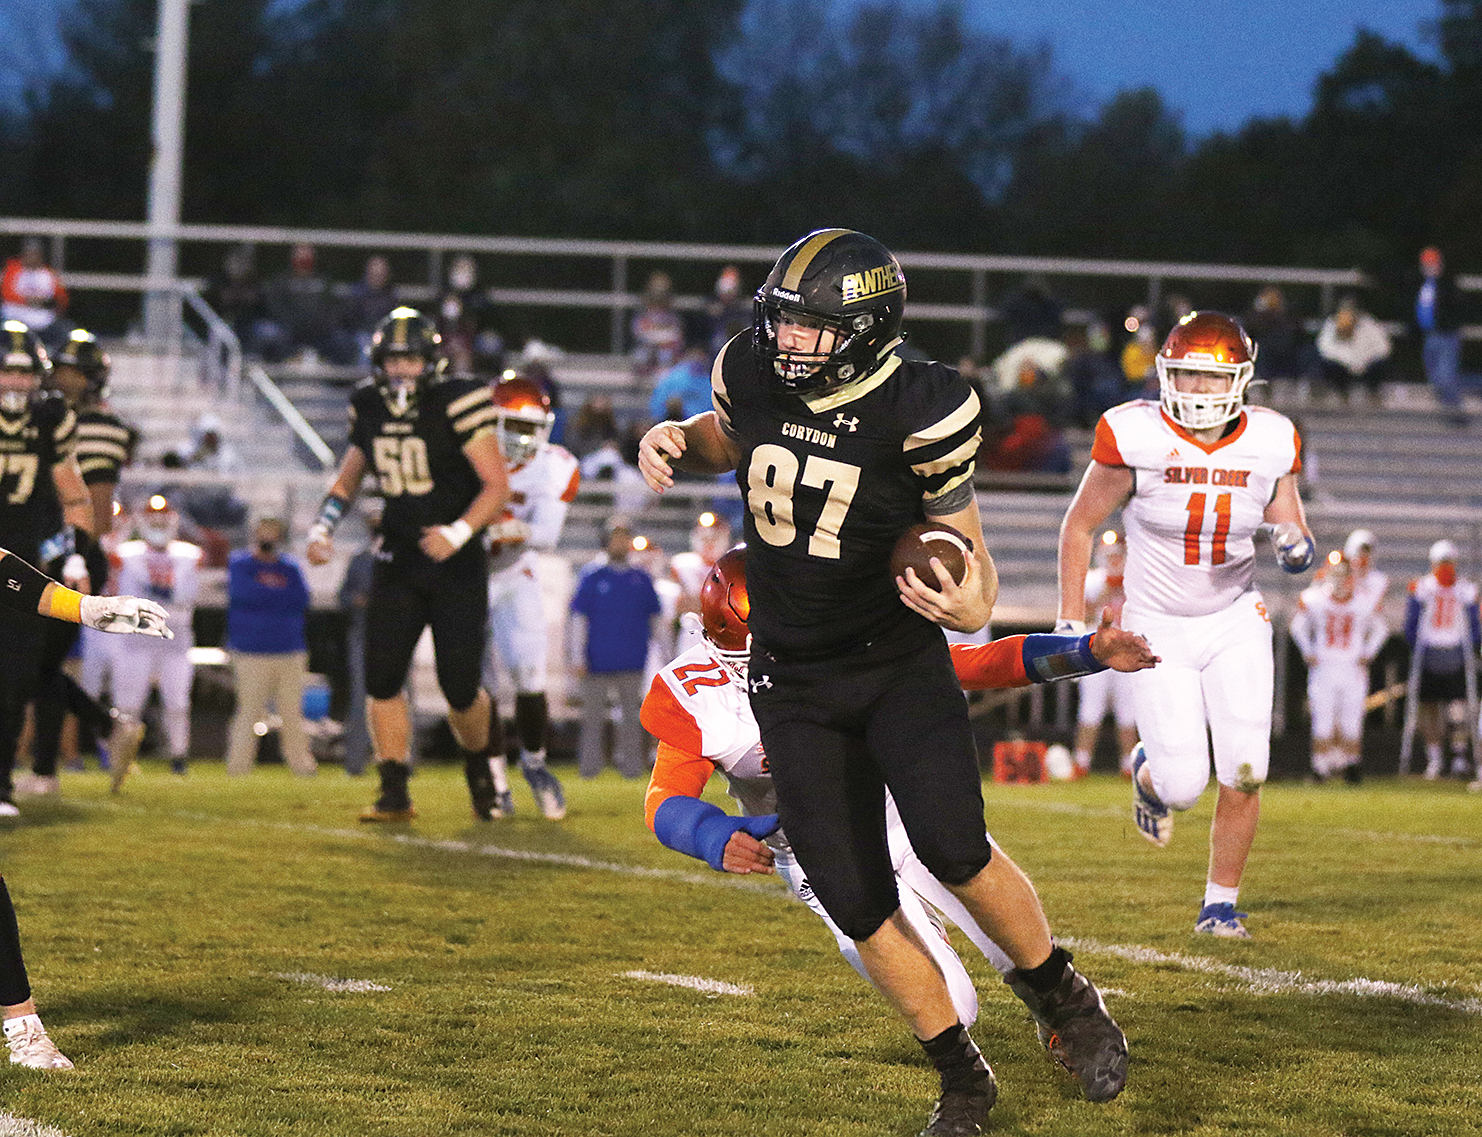 Panthers show 'spurts' of good football, fall to Dragons